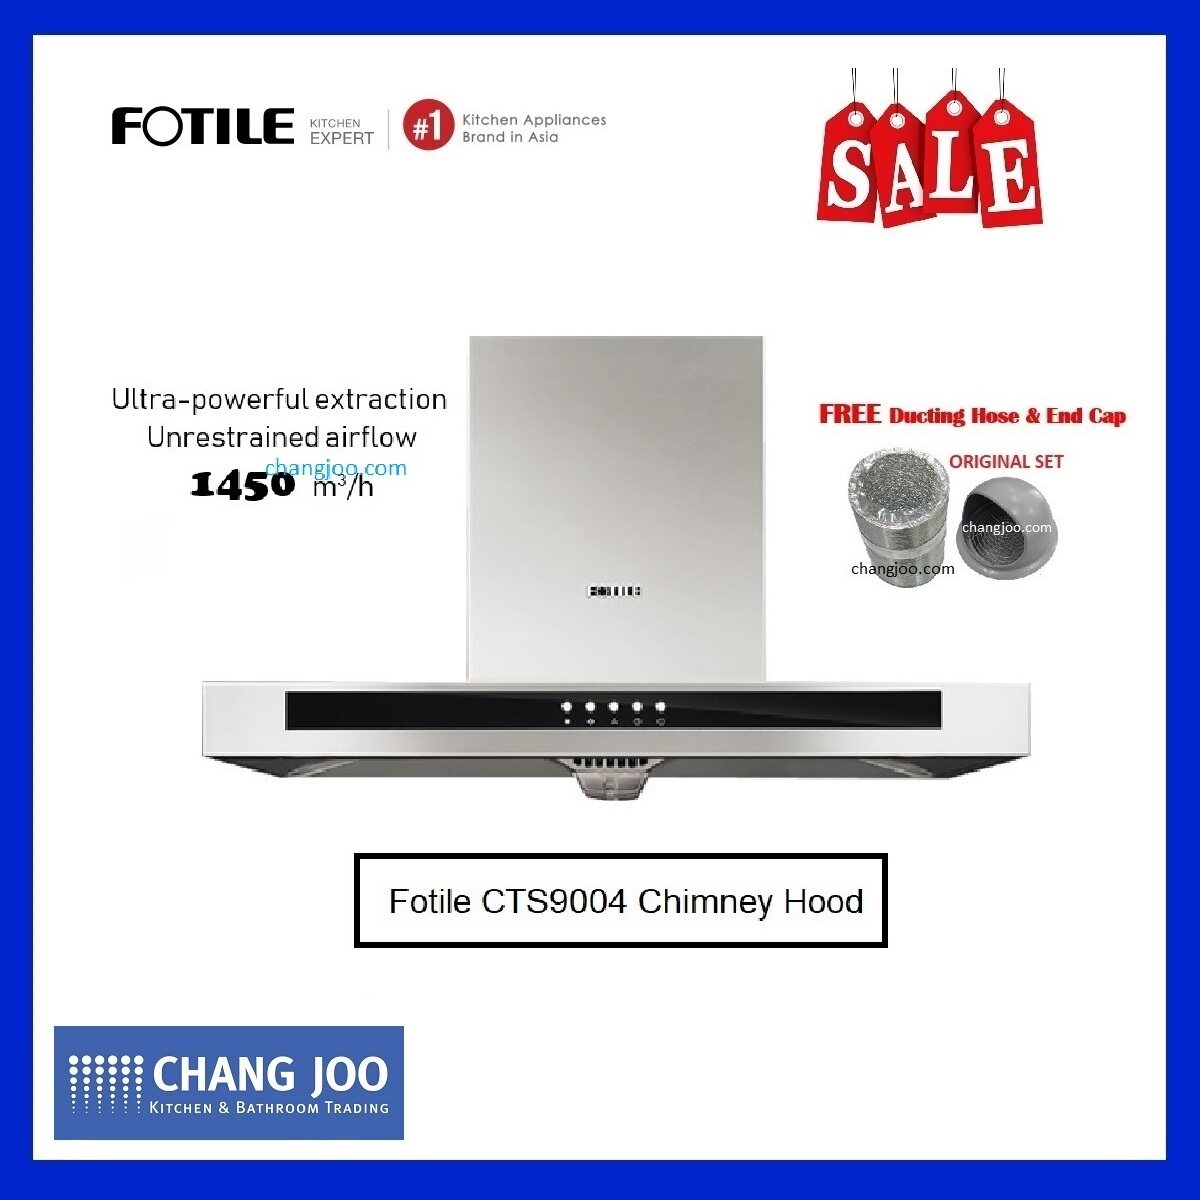 Fotile CTS9004 Chimney Hood 1450m3/h unrestrained airflow